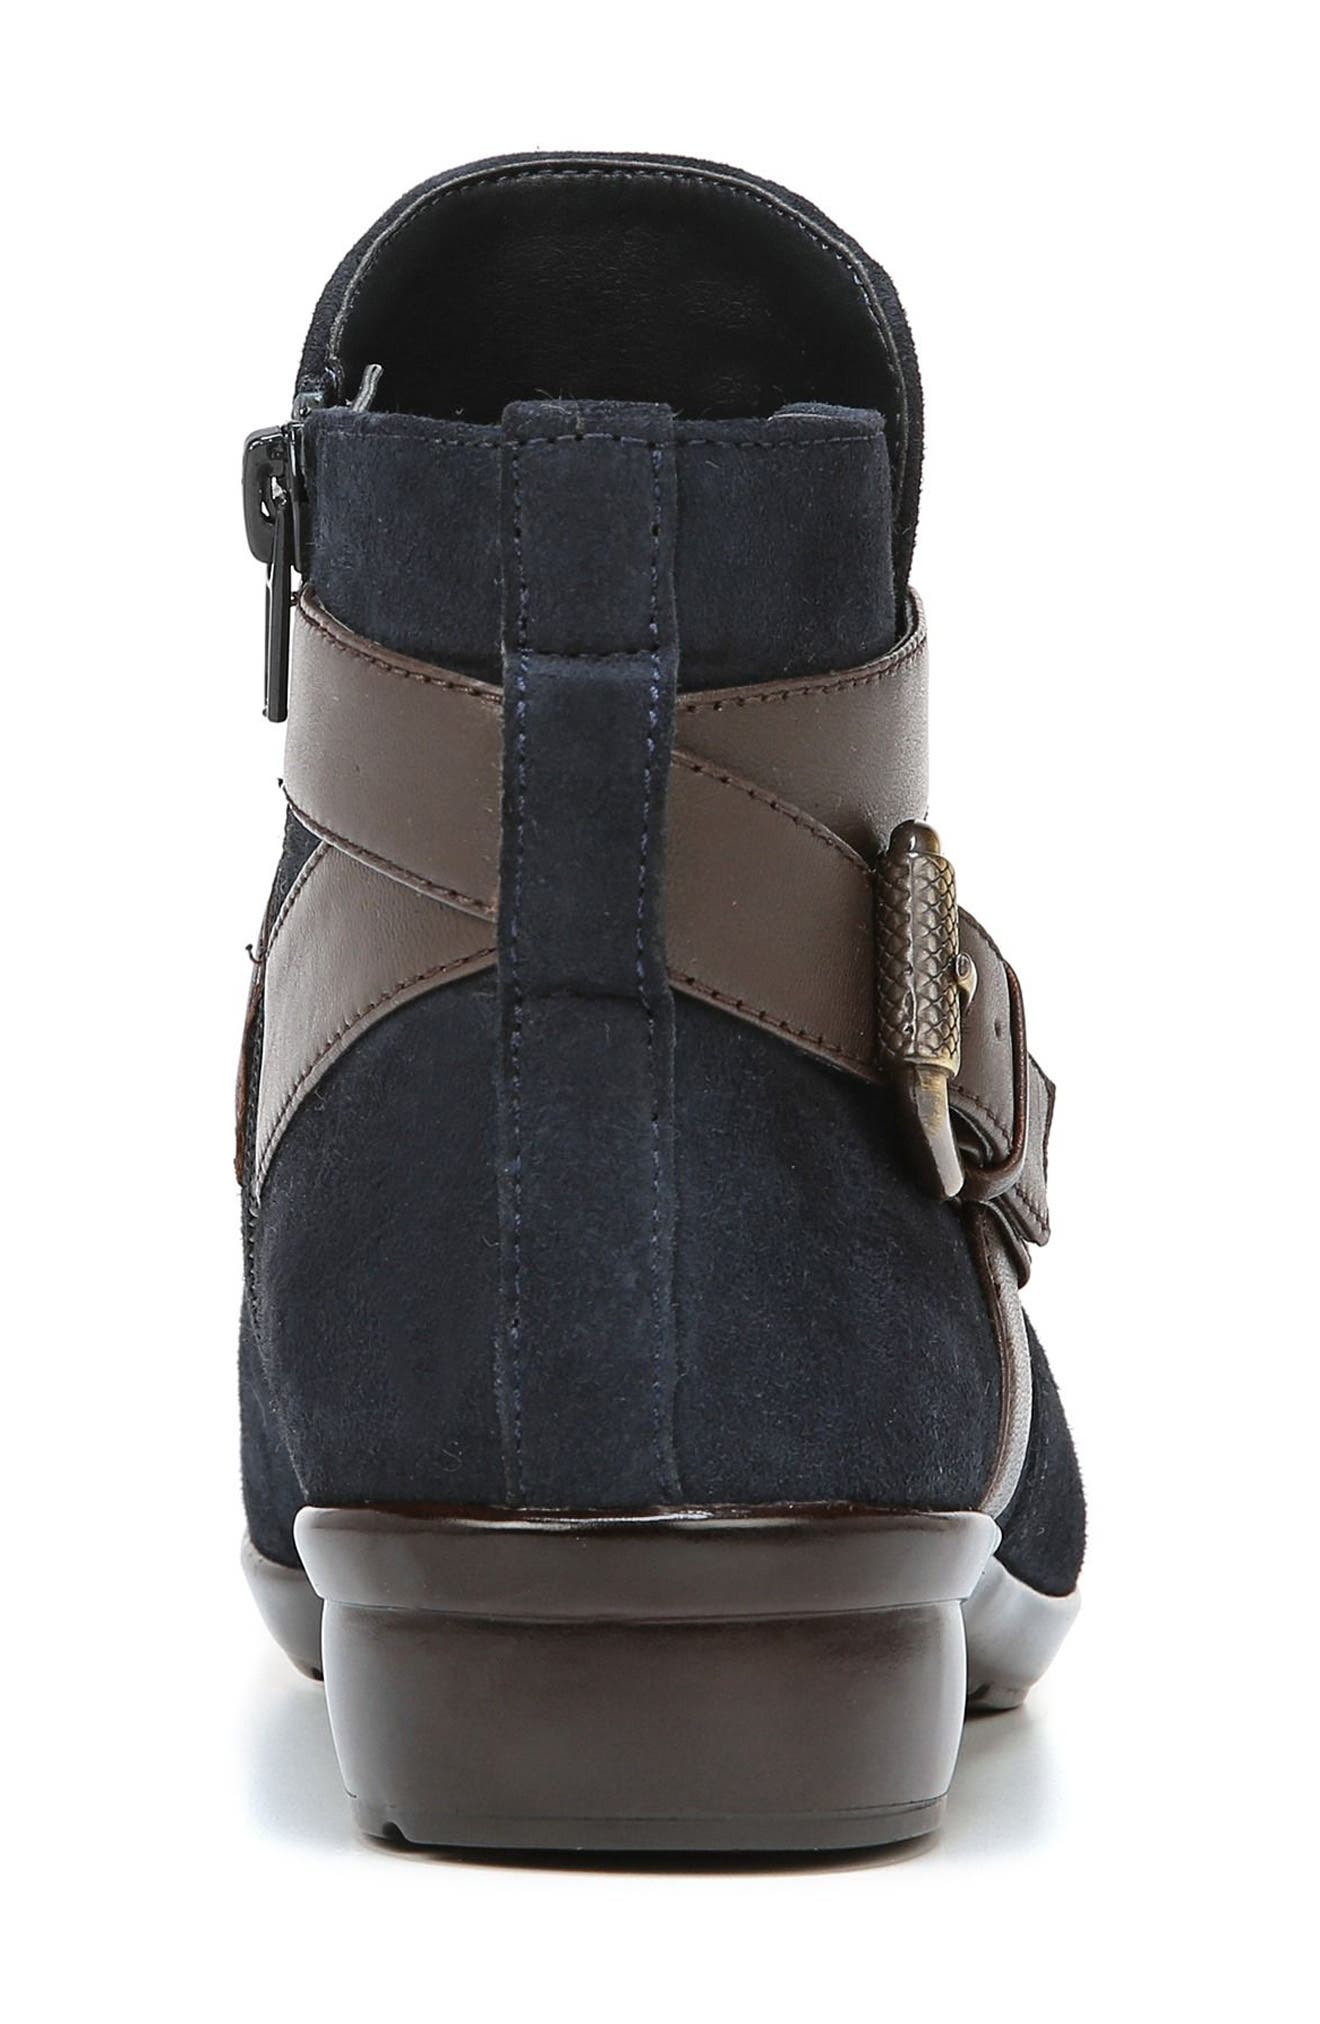 Cassandra Buckle Strap Bootie,                             Alternate thumbnail 7, color,                             NAVY/ BROWN SUEDE